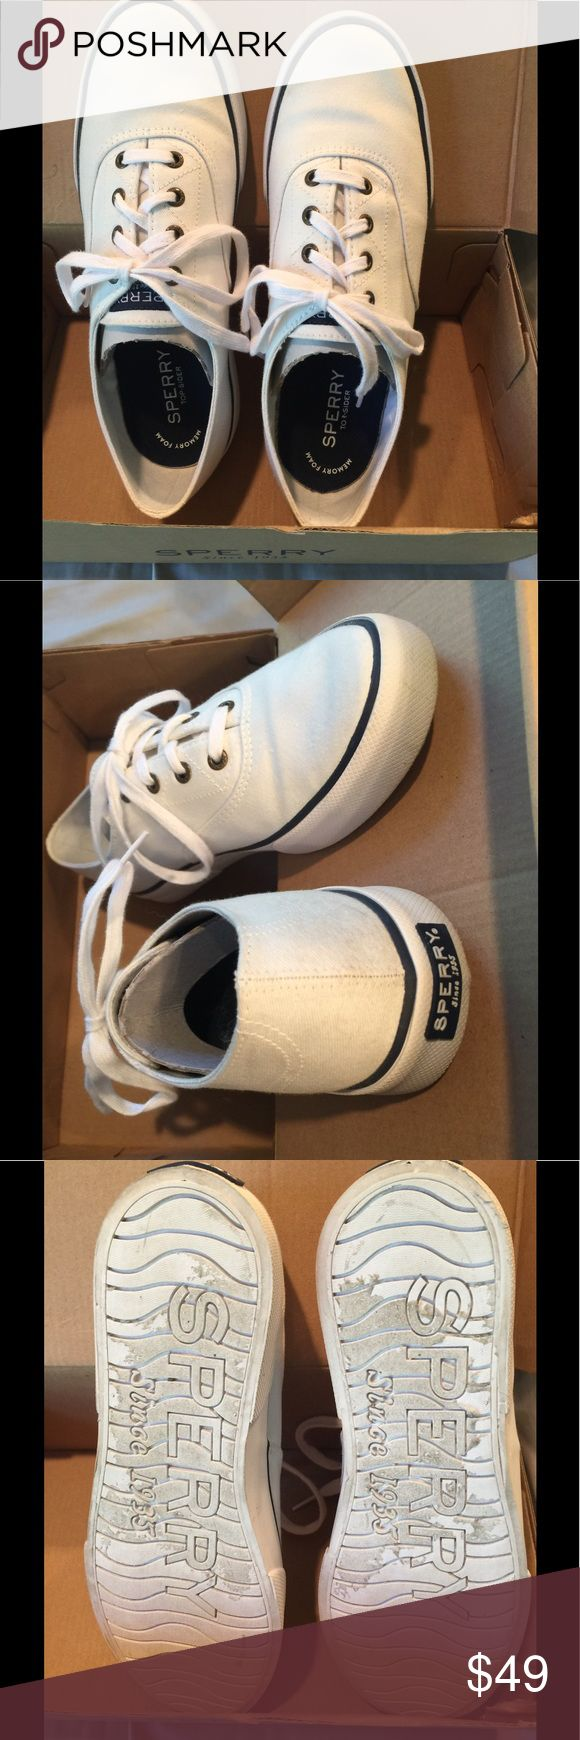 White Sperry Top-sliders Almost new, worn one time, too small for me😞 A few very light scuffs of canvas but otherwise pristine. Ships in original box and packaging. Perfect, versatile shoes for summer. Sperry Top-Sider Shoes Sneakers